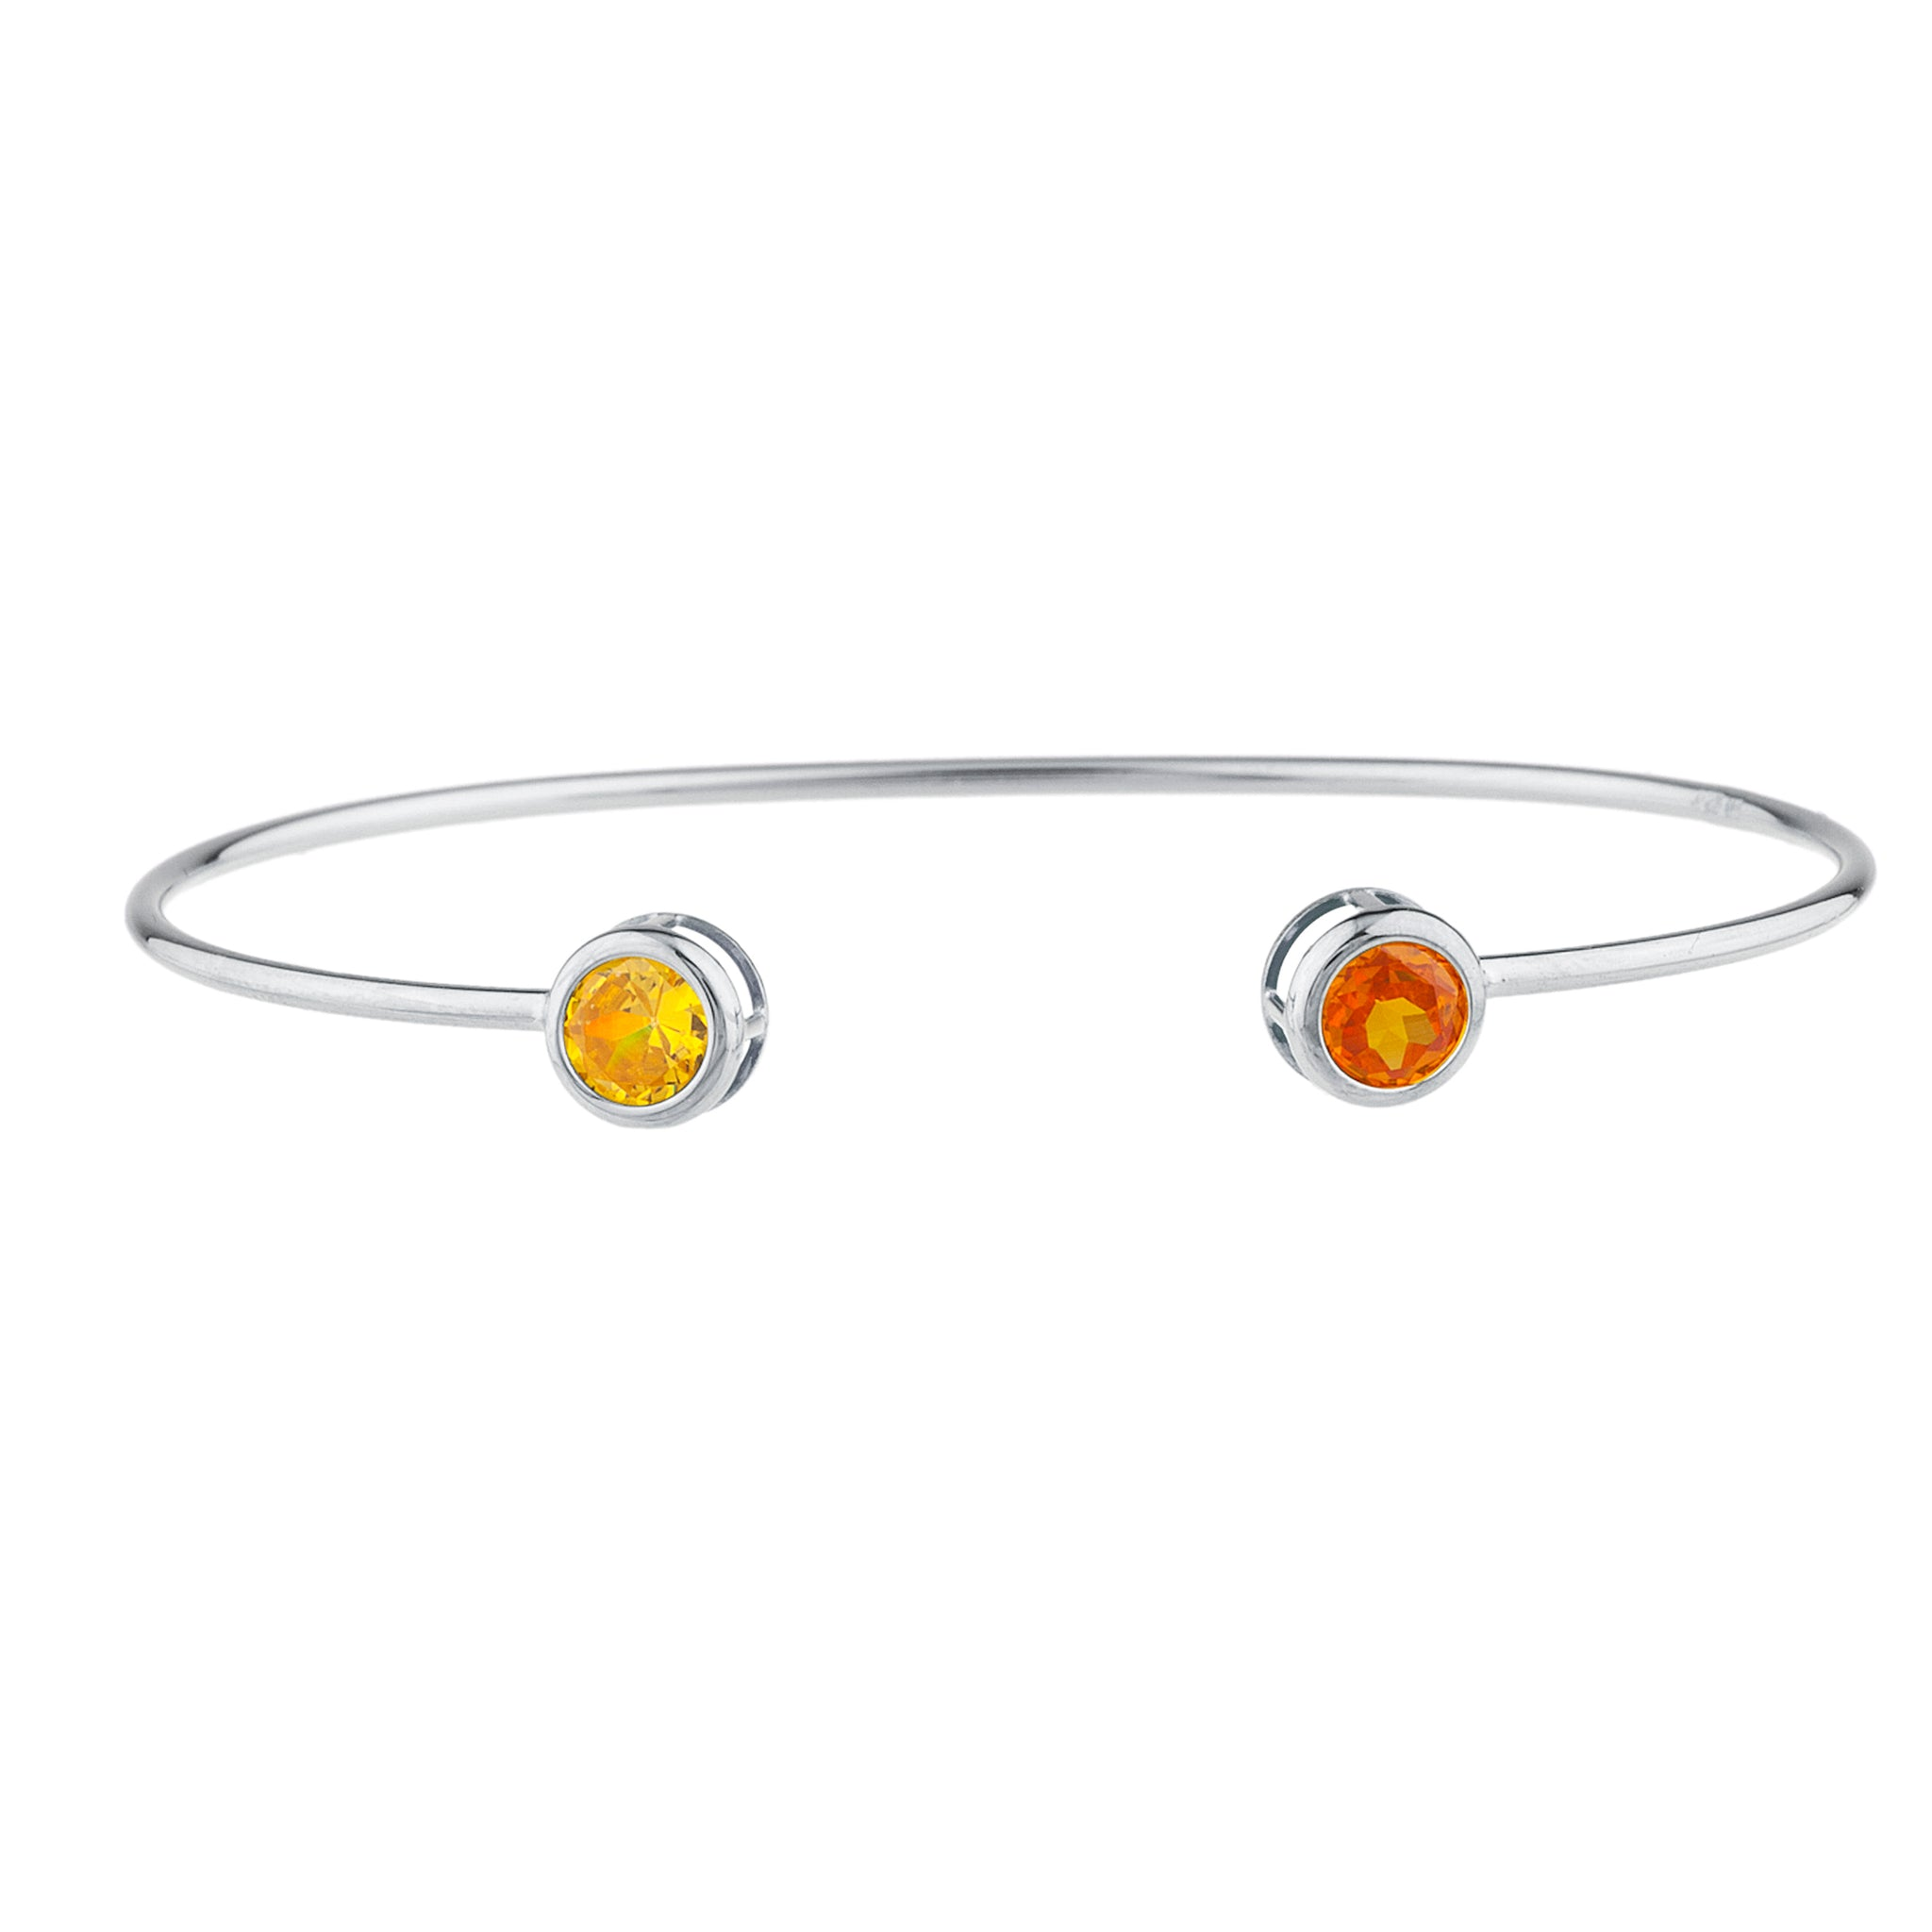 Orange & Yellow Citrine Round Bezel Bangle Bracelet .925 Sterling Silver